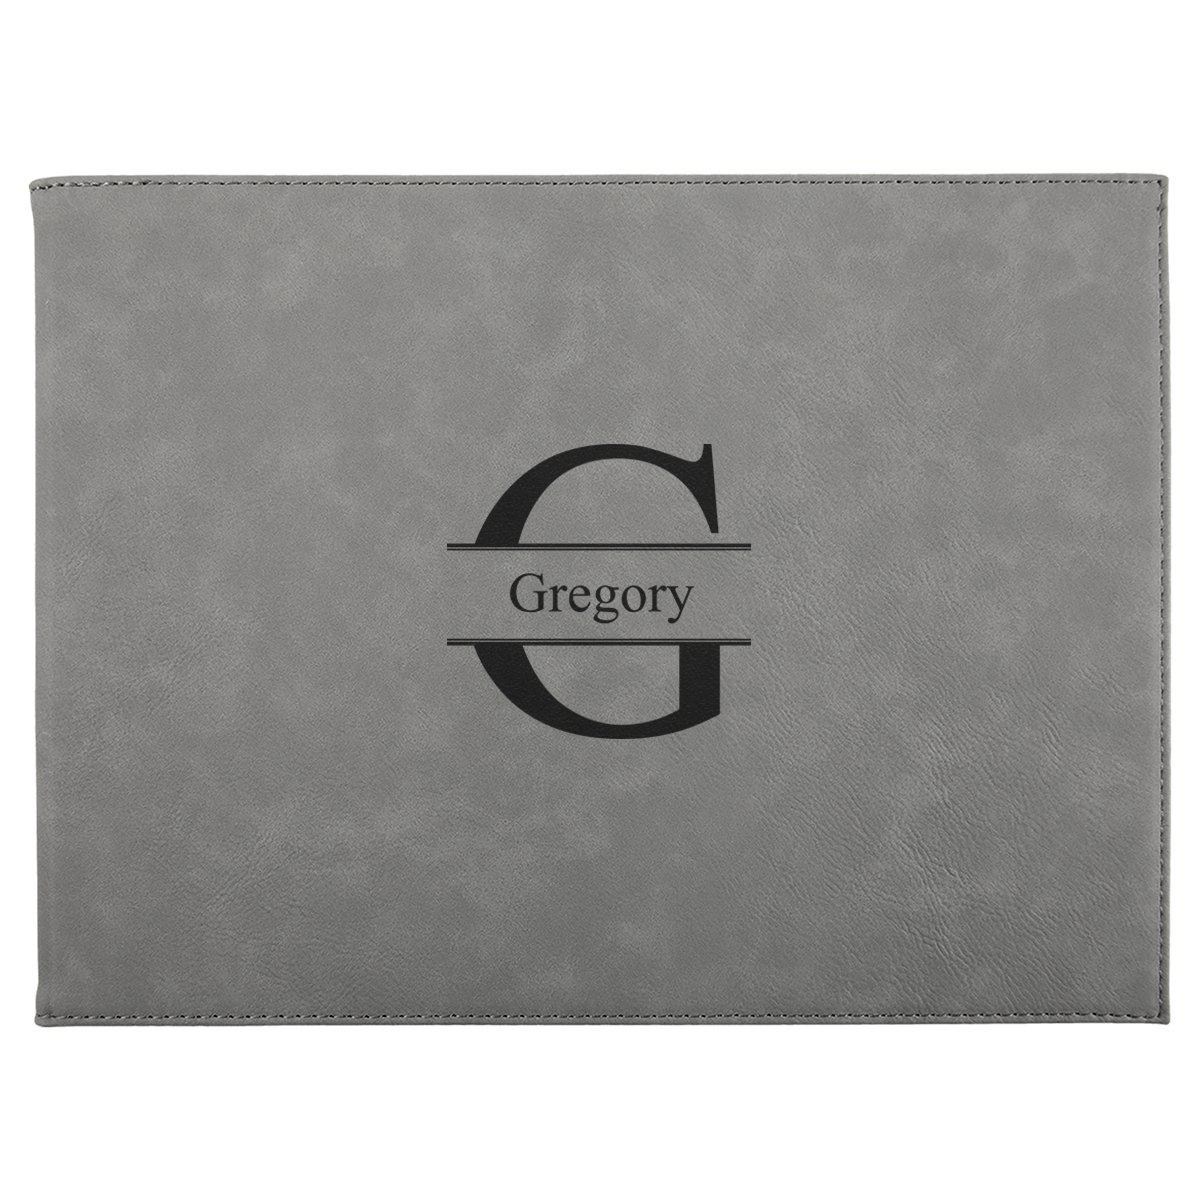 Personalized Certificate Holder 9� x 12� - Gray